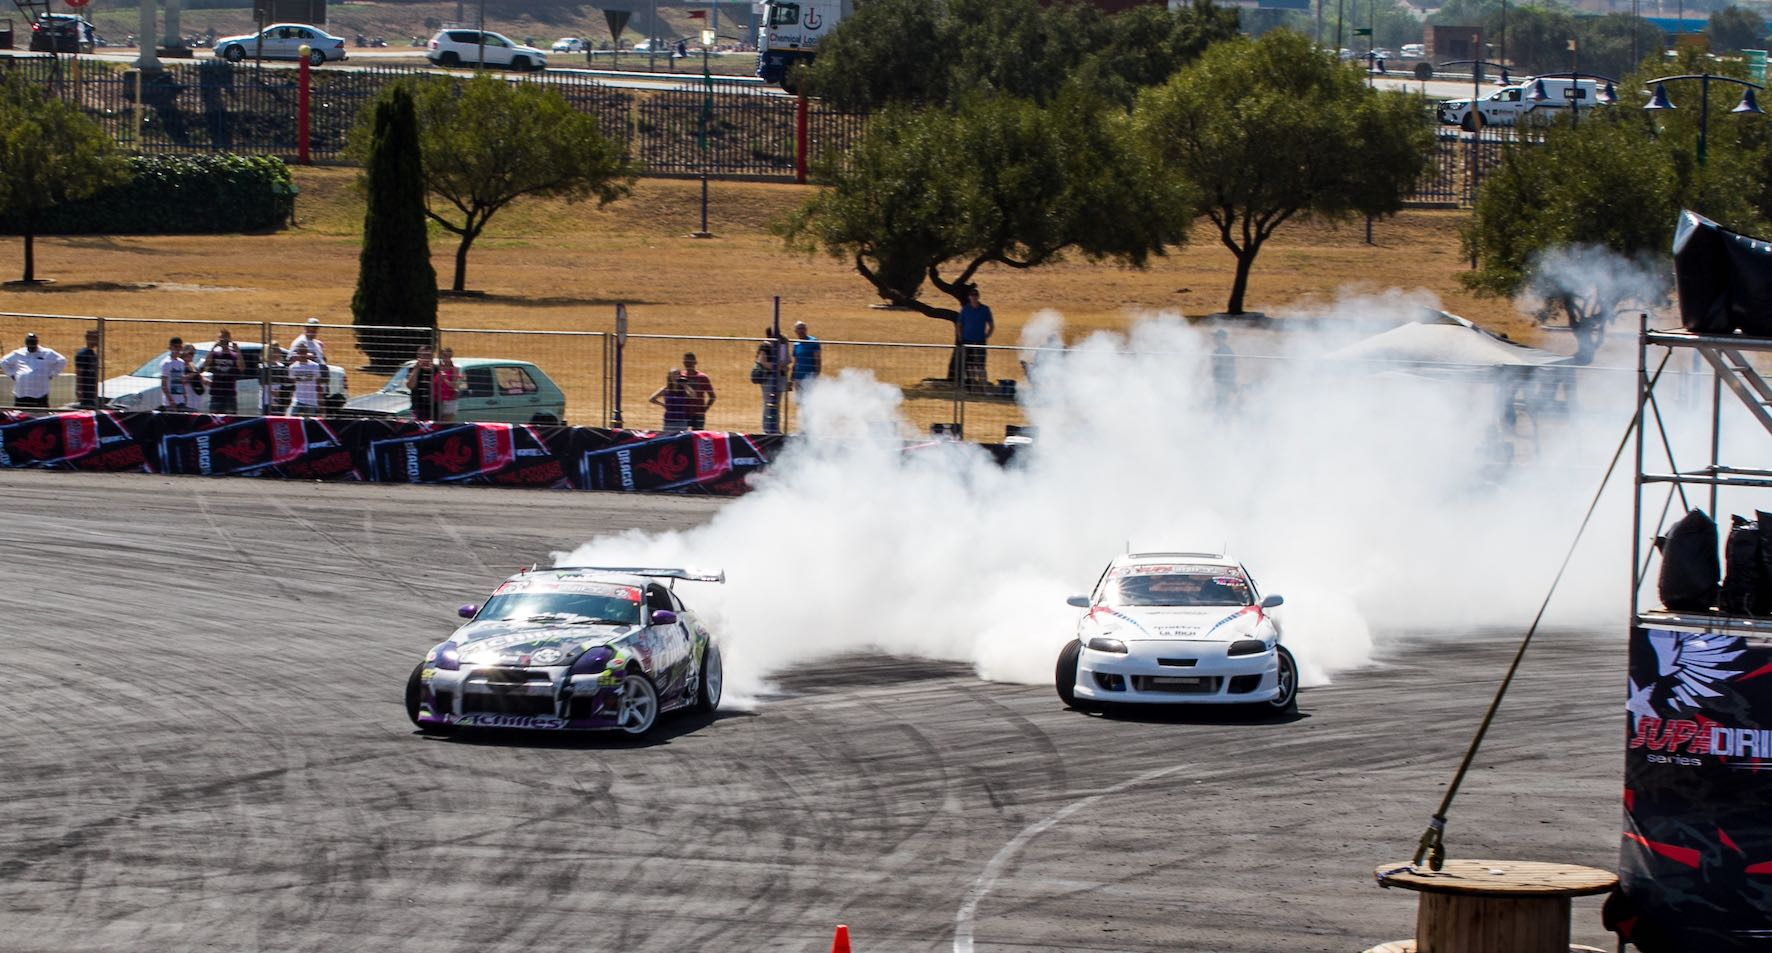 Drifting action at its best from the final round of the 2018 SupaDrift Series